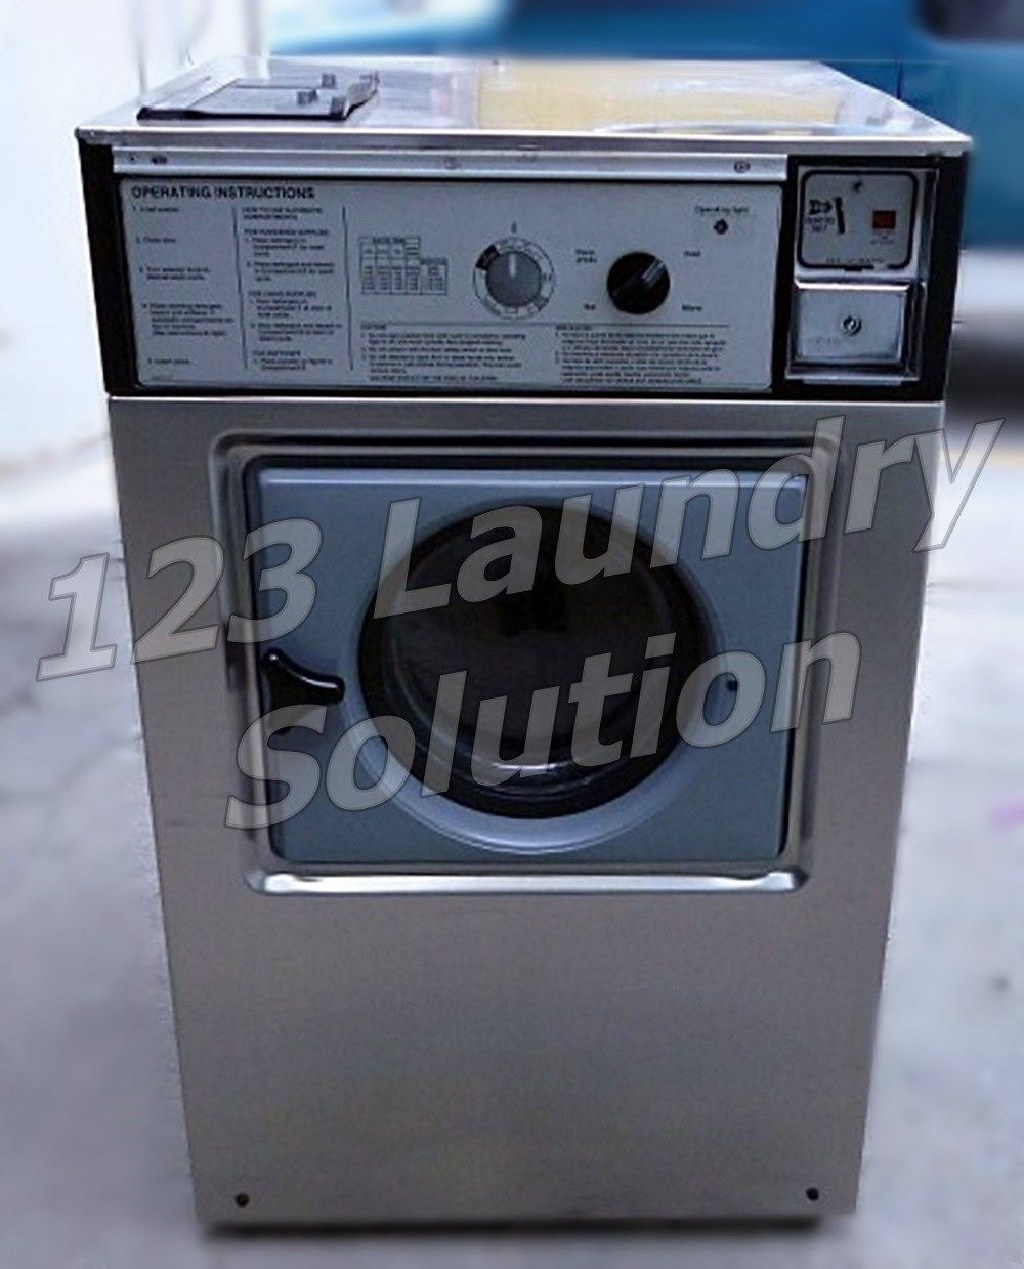 Coin Laundry Wascomat Front Load Washer Double Load W105 Stainless Steel Used